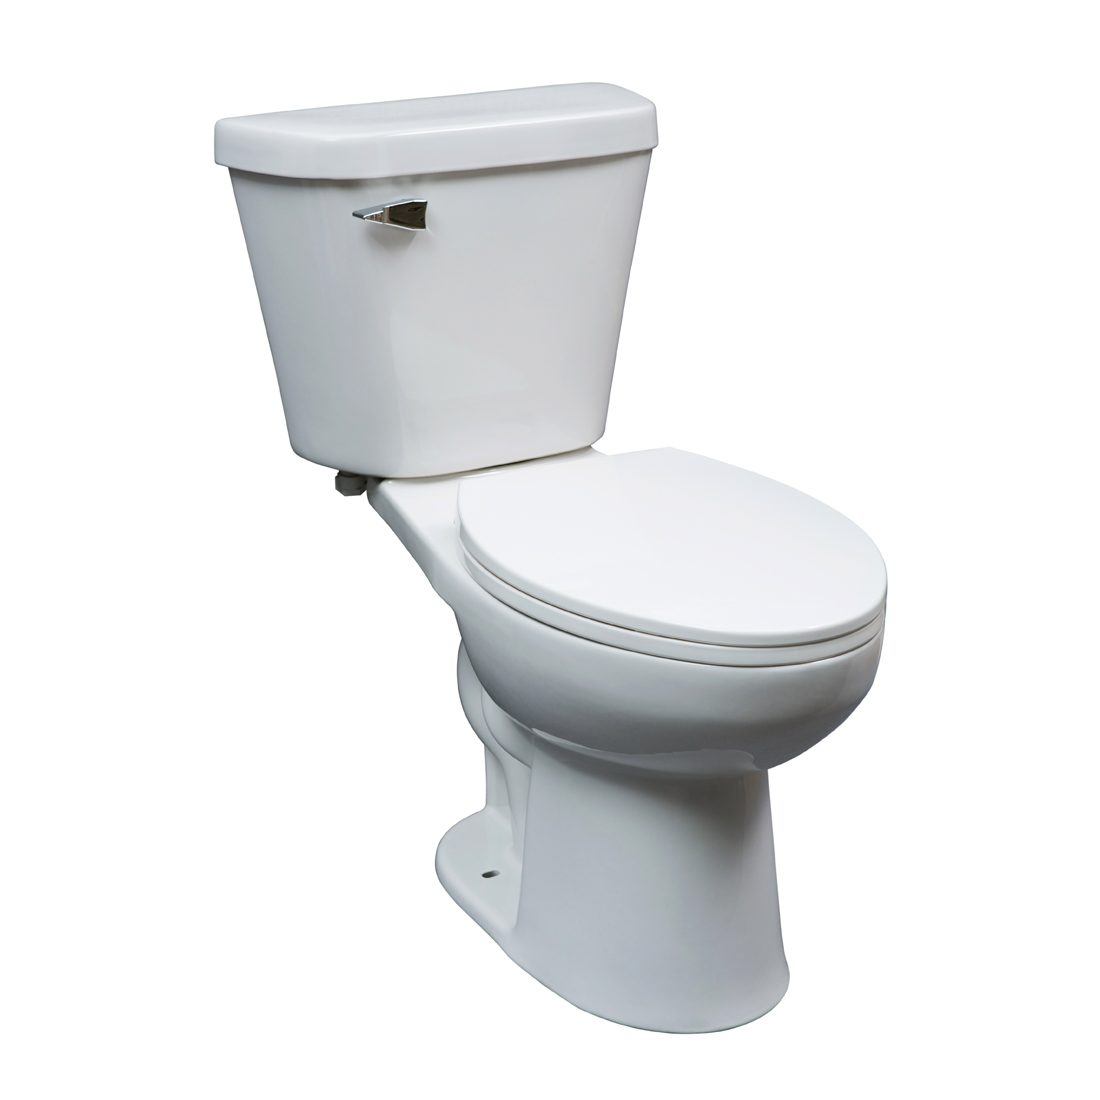 Chicago Toilet 16.5inch 4.8L White Front View